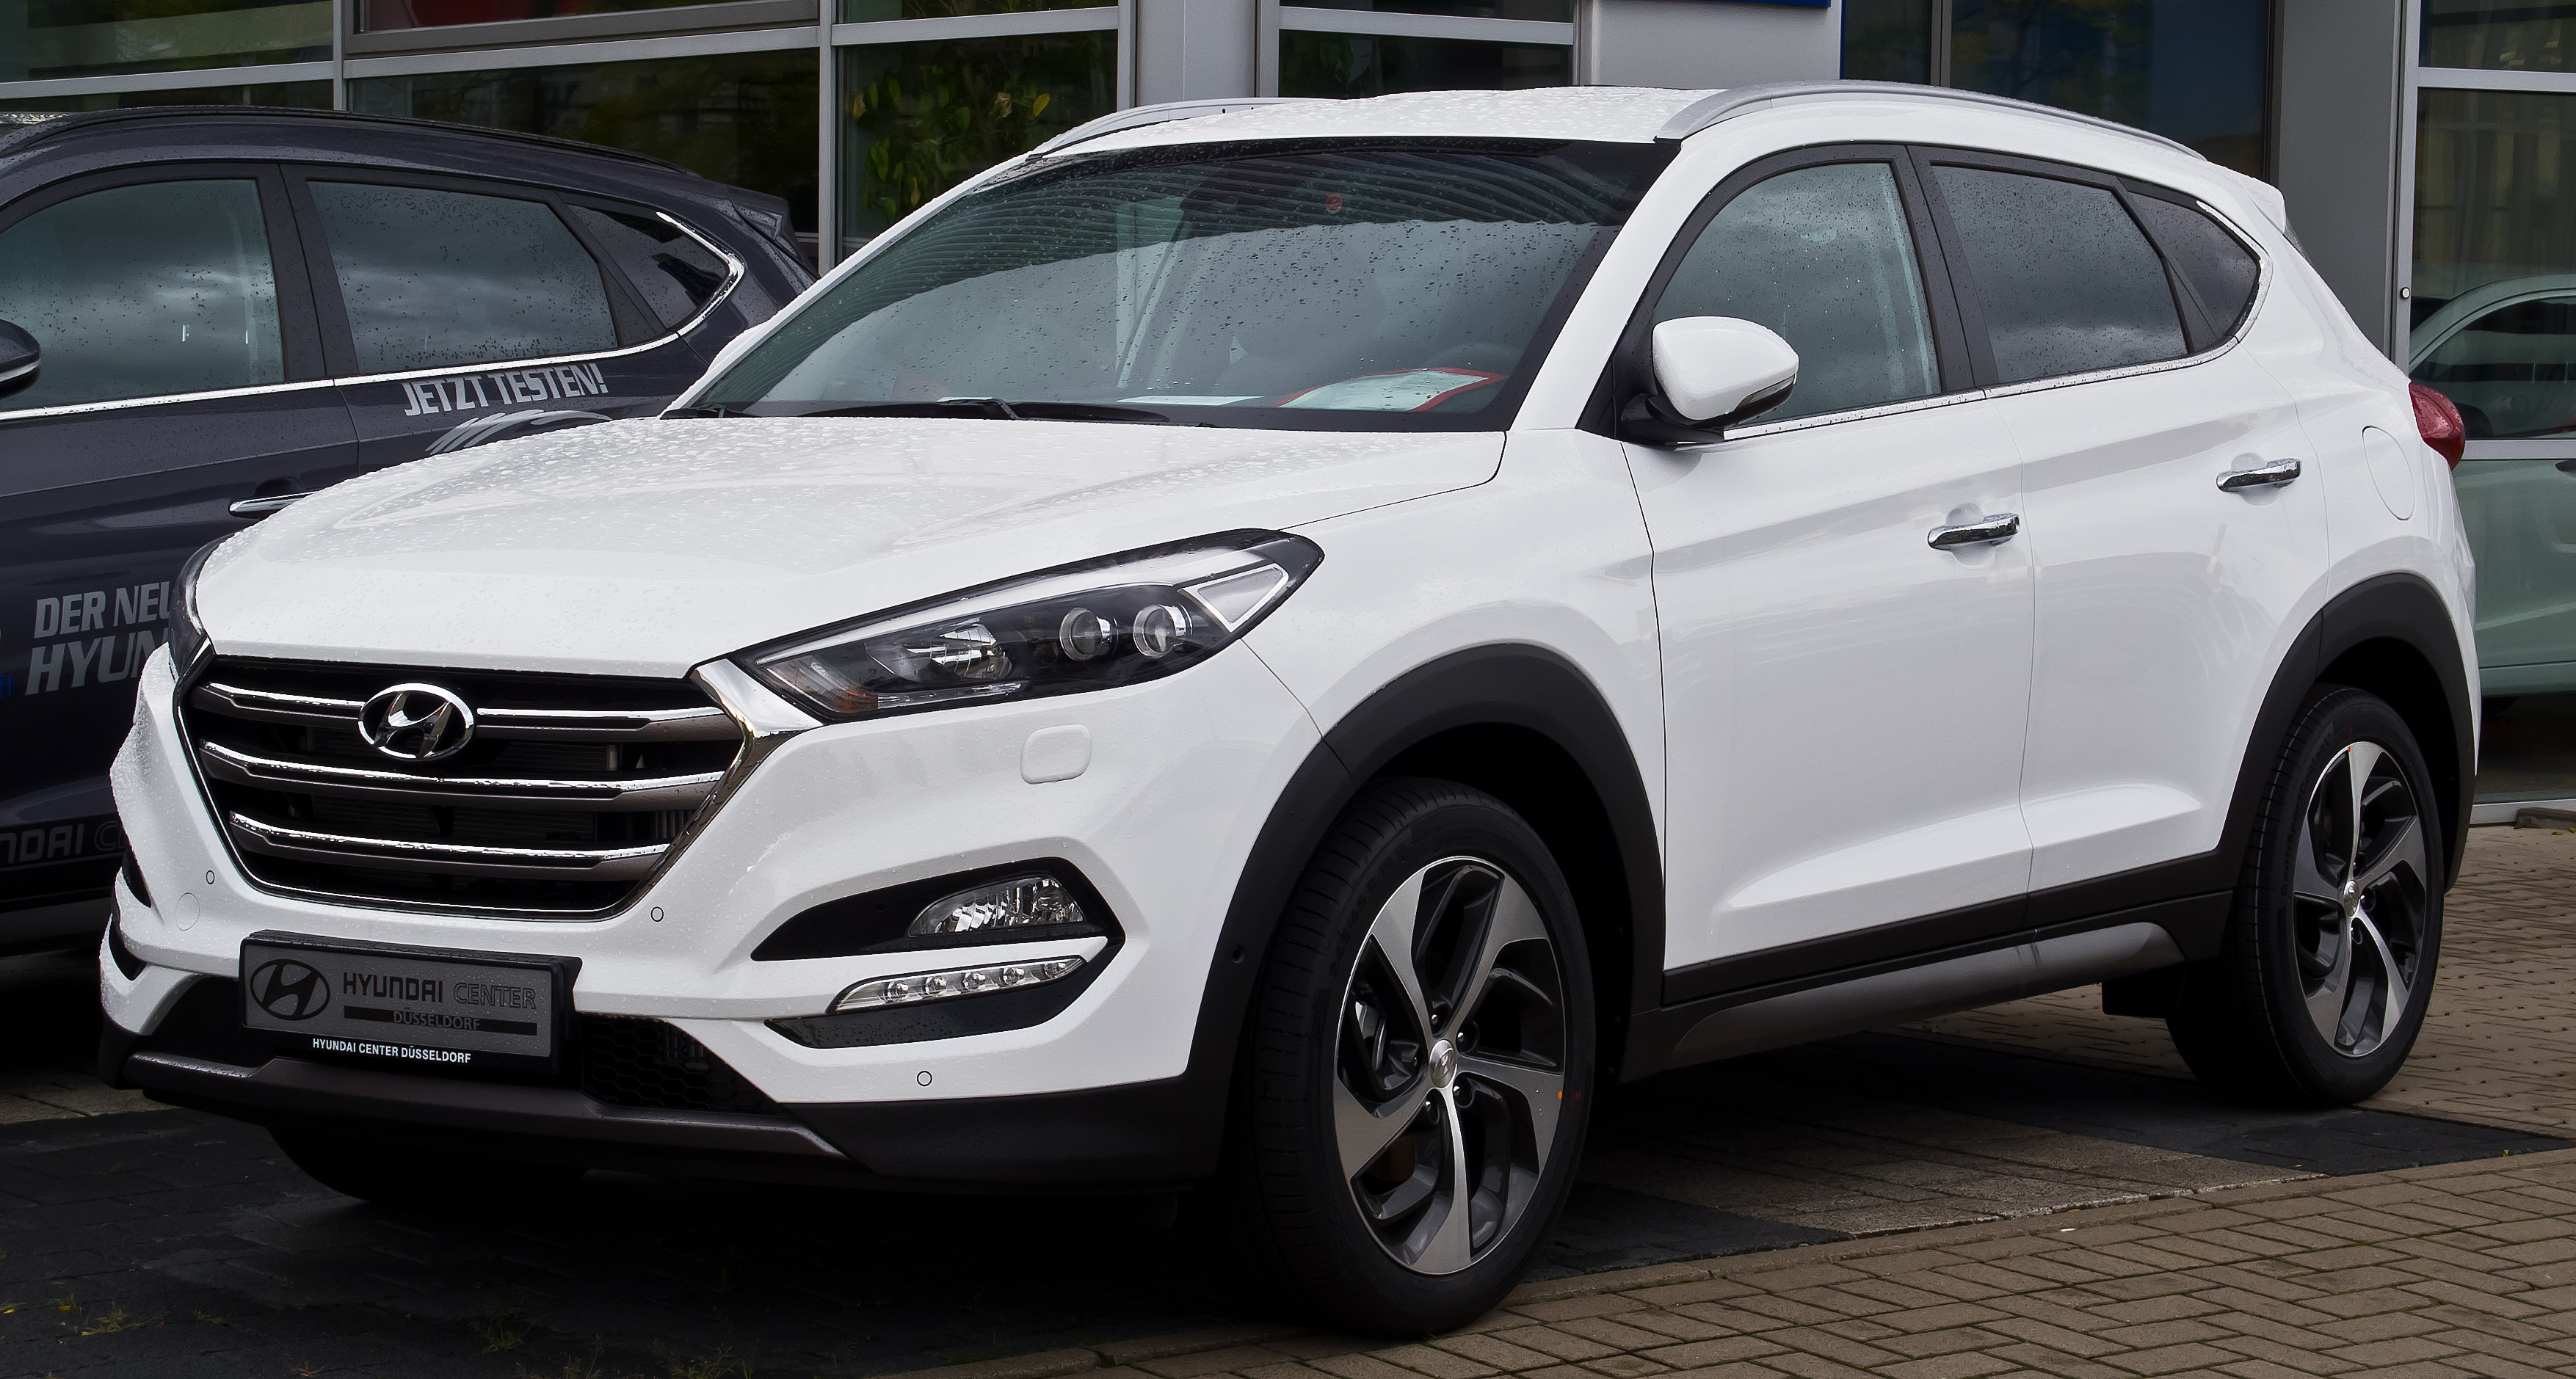 File:Hyundai Tucson 2.0 CRDi 4WD Premium (III) – Frontansicht, 5 on hyundai i10 wiring diagram, hyundai sonata wiring diagram, hyundai tucson parts diagram, hyundai tucson transmission, hyundai tucson engine, hyundai accent wiring diagram, 2007 hyundai wiring diagram, hyundai tucson thermostat replacement, hyundai tucson exhaust system, hyundai tucson water pump, hyundai tucson ac diagram, hyundai santa fe wiring diagram, hyundai tucson frame diagram, hyundai tucson dimensions, hyundai tiburon wiring diagram, hyundai elantra wiring diagram, hyundai veloster wiring diagram, hyundai tucson seats, hyundai tucson wheels, hyundai tucson harness diagram,